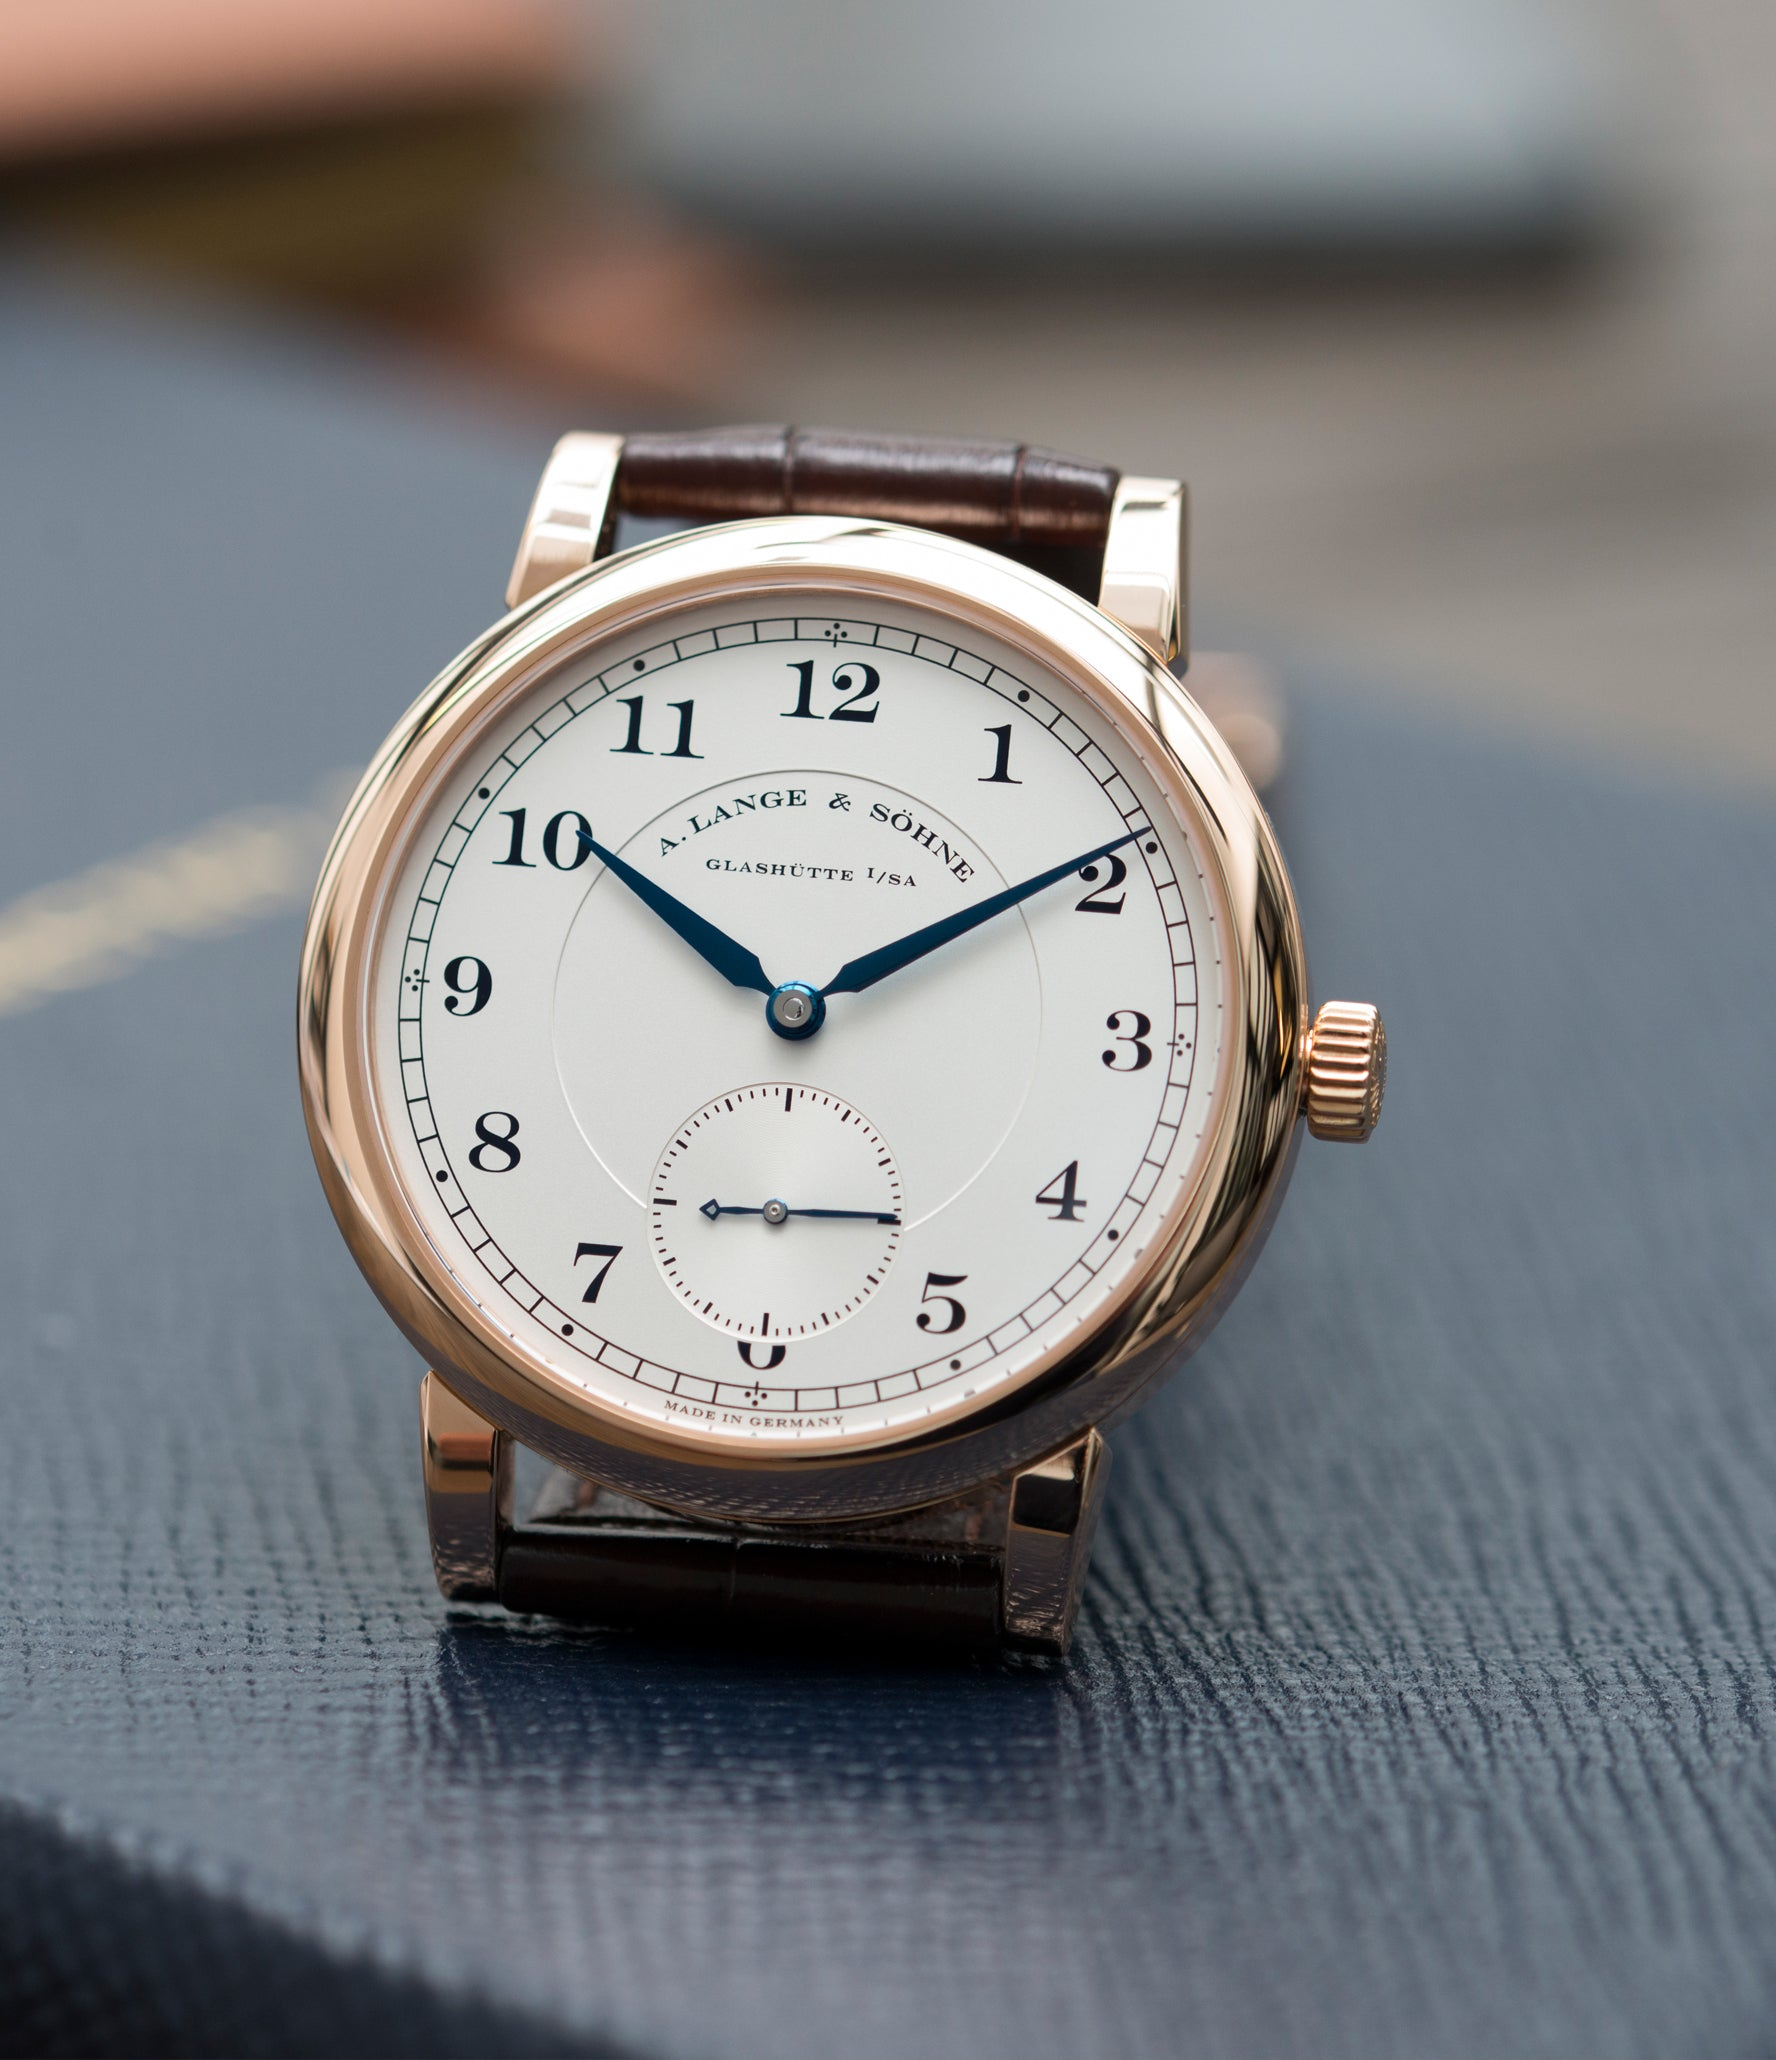 men's luxury watch A. Lange & Sohne 1815 233.032 rose gold dress watch for sale online at A Collected Man London Uk specialist of preowned luxury watches